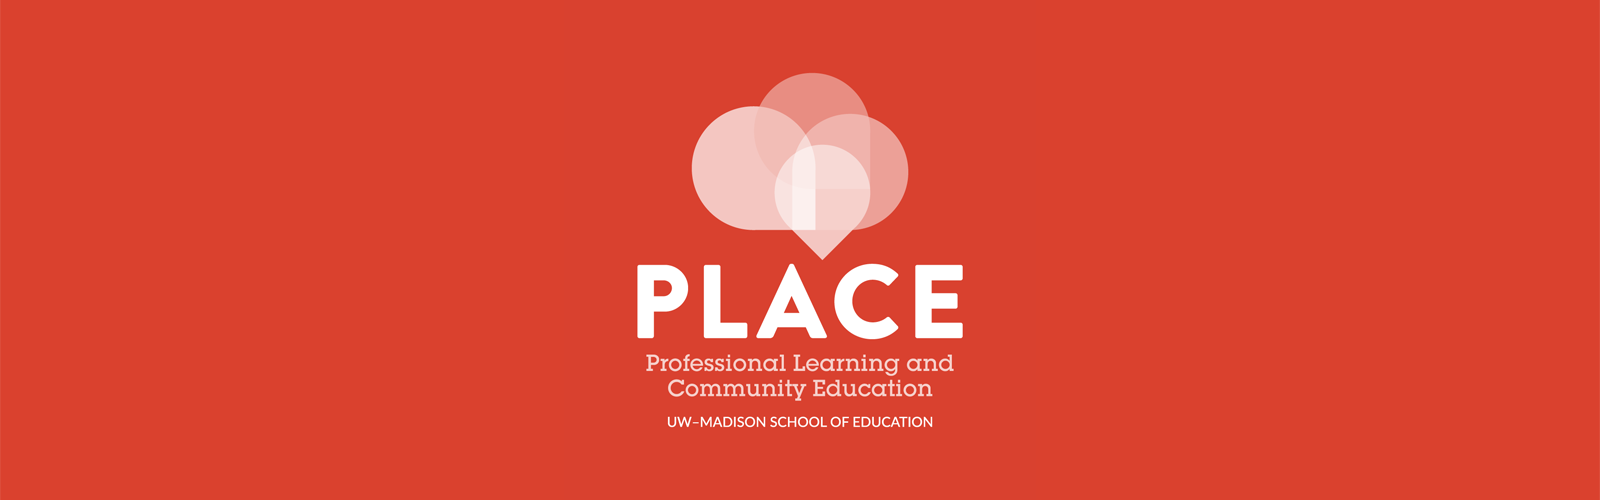 PLACE center reverse logo on red background